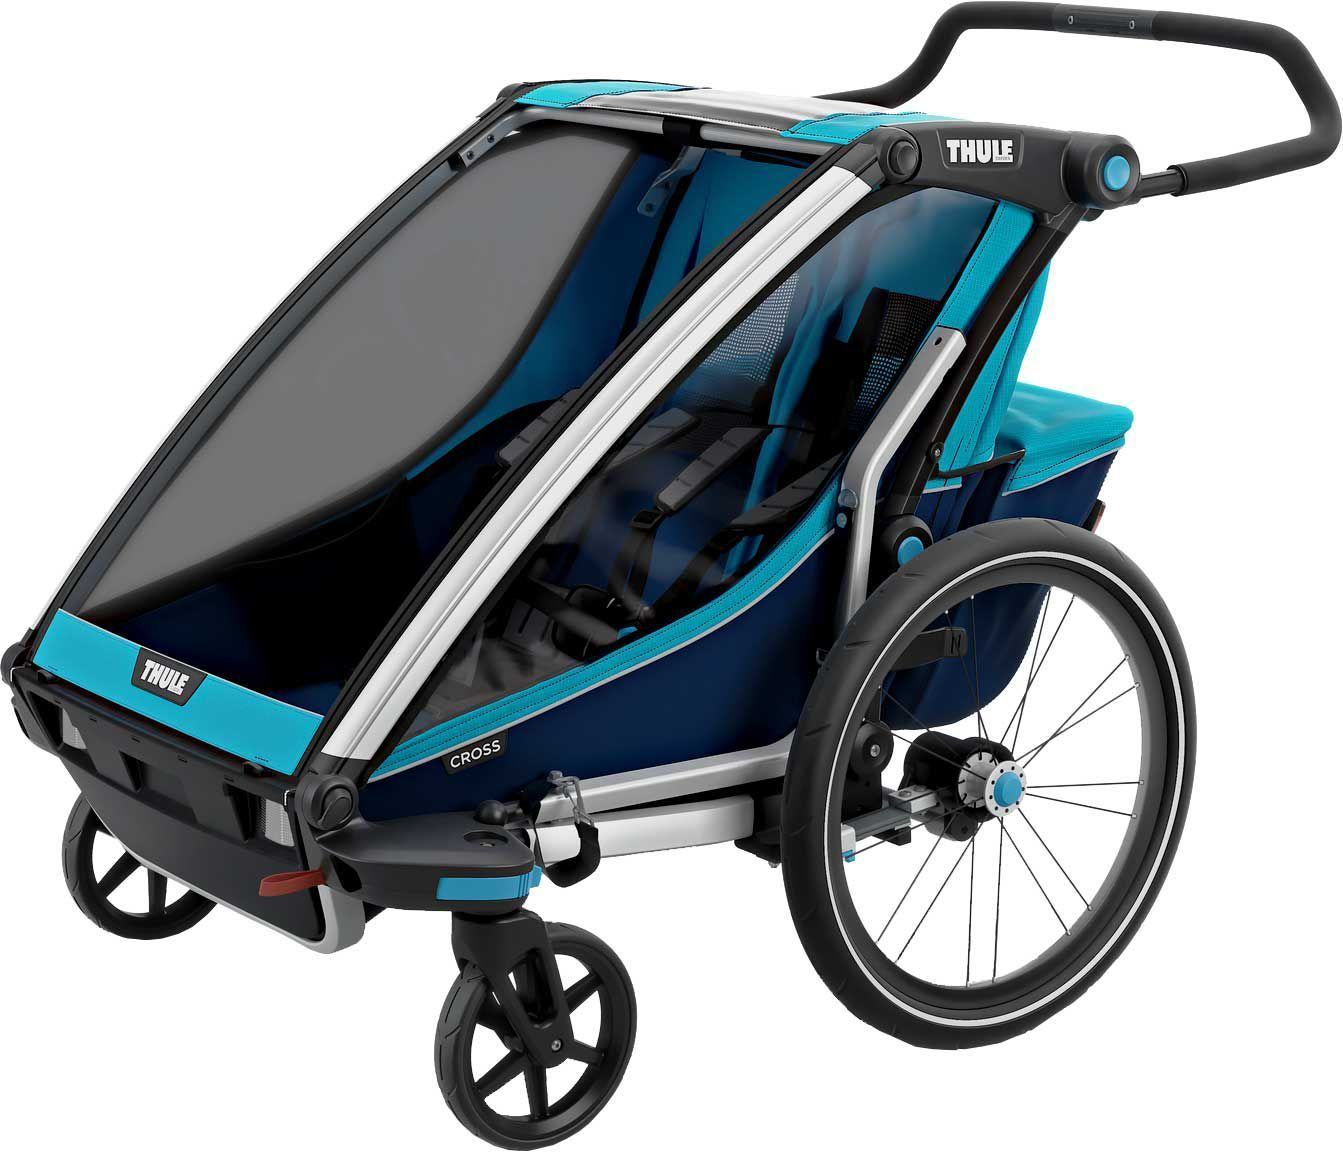 Thule Chariot Cross 2 Double Bike Trailer and Stroller